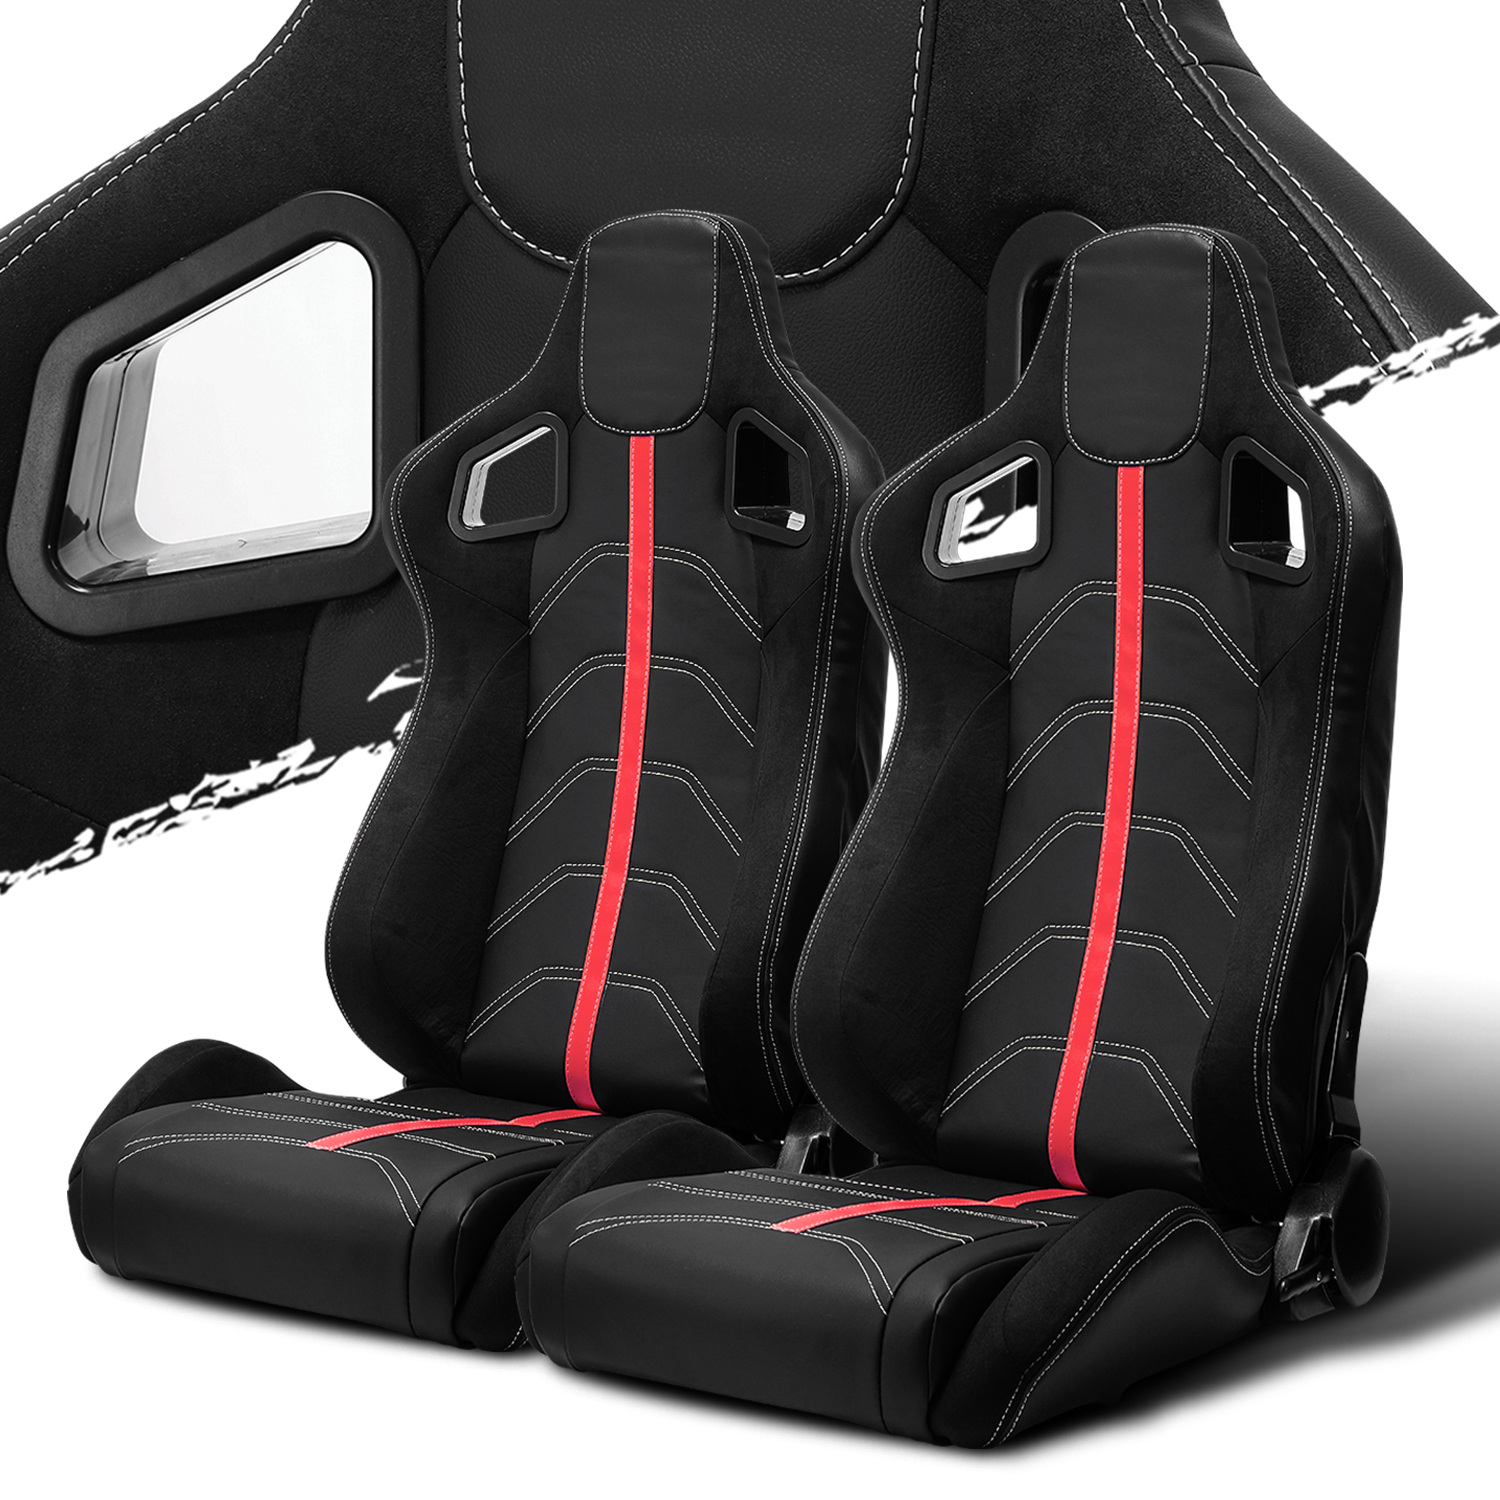 Recaro Style Speed Racing Seats Pvc Suede Leather Jdm Red Stitch Left Right Ushirika Coop